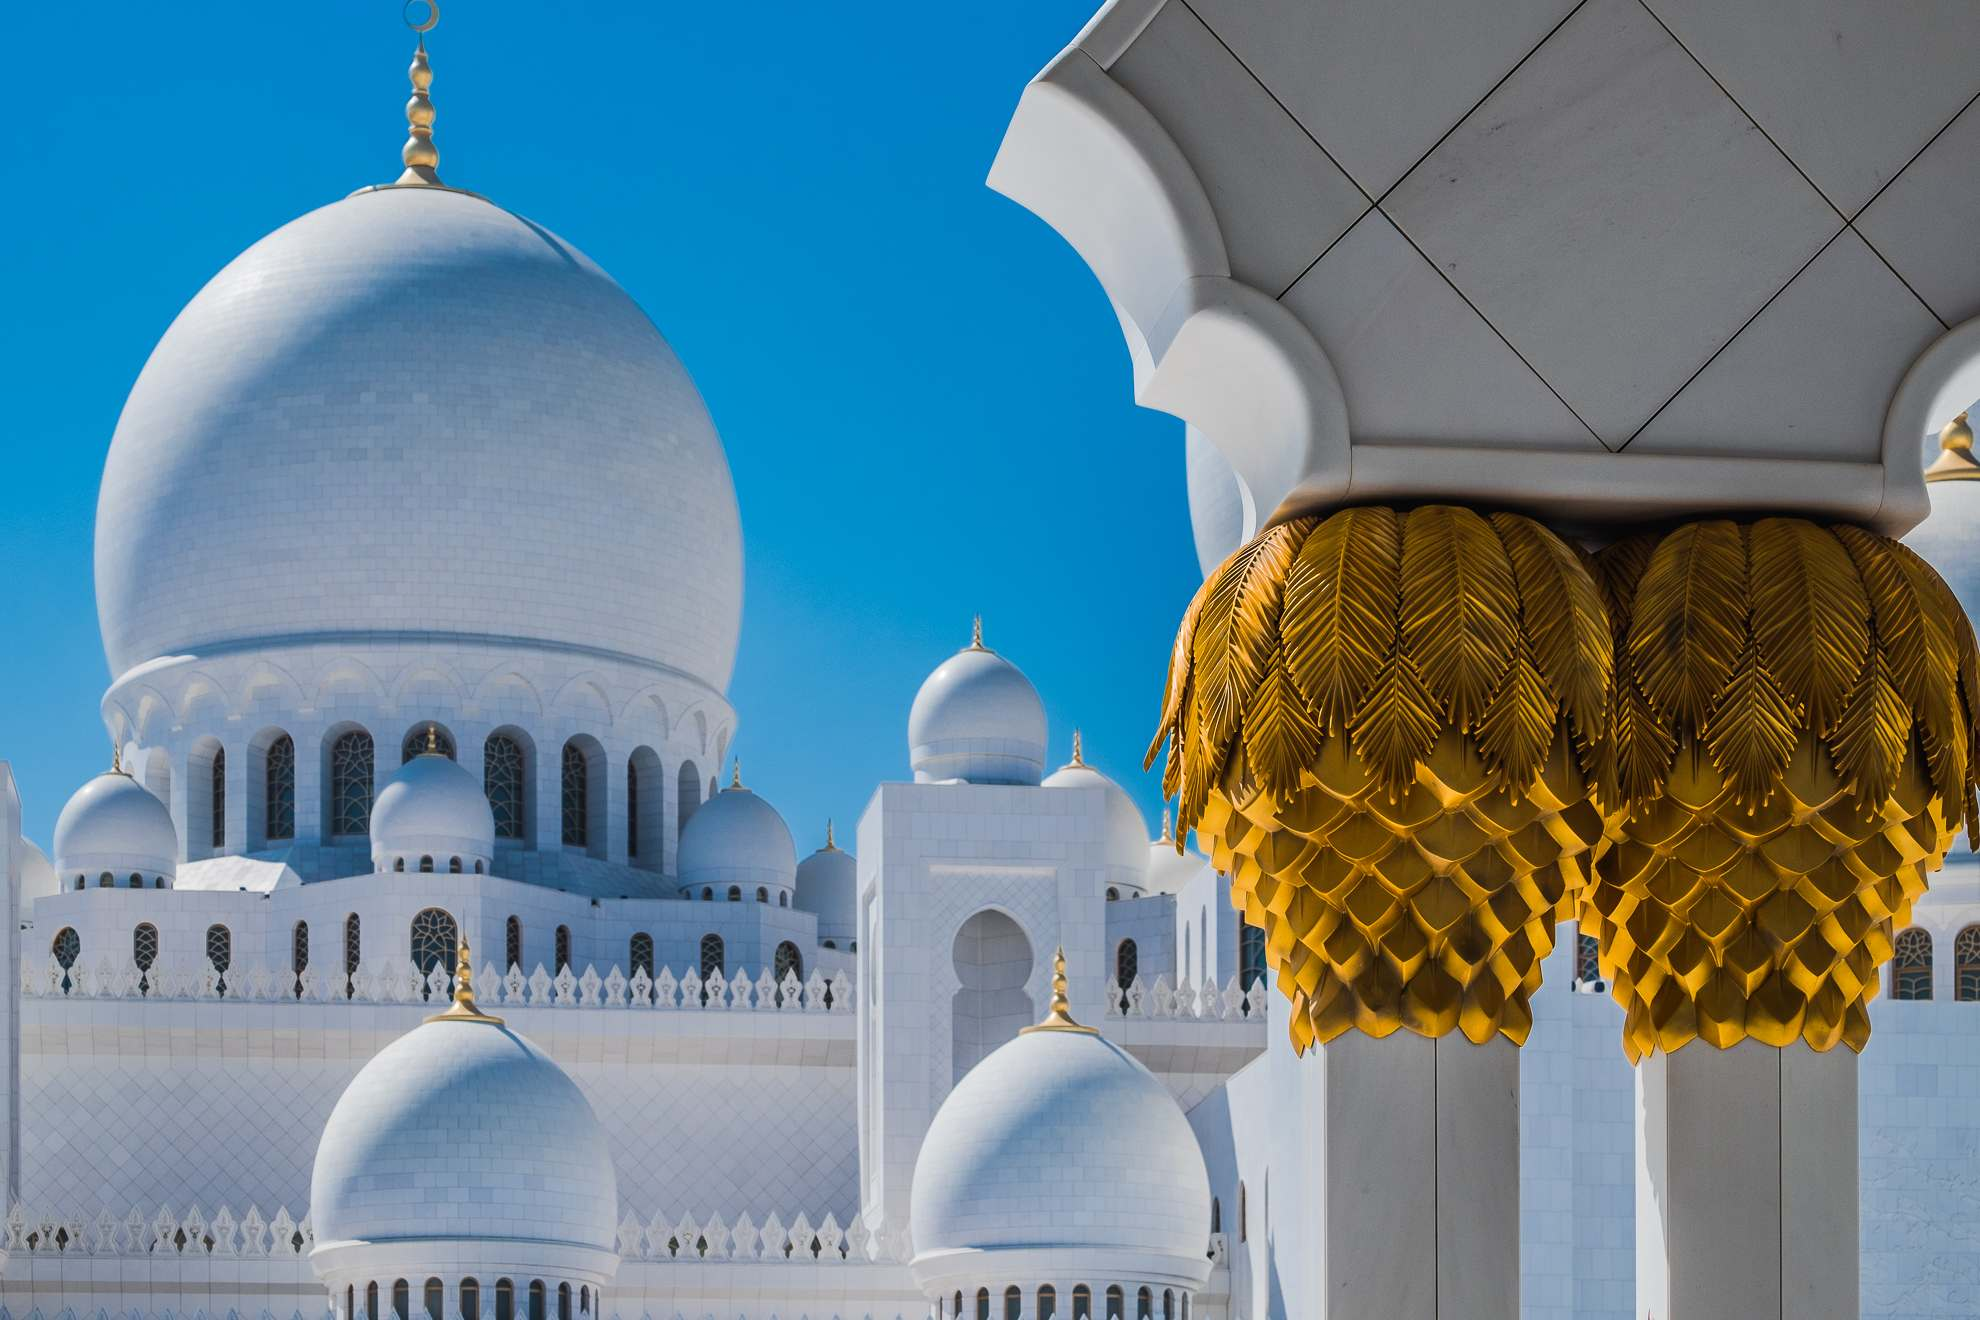 sheikh zayed grand mosque11 Picturesque Sheikh Zayed Grand Mosque in Abu Dhabi